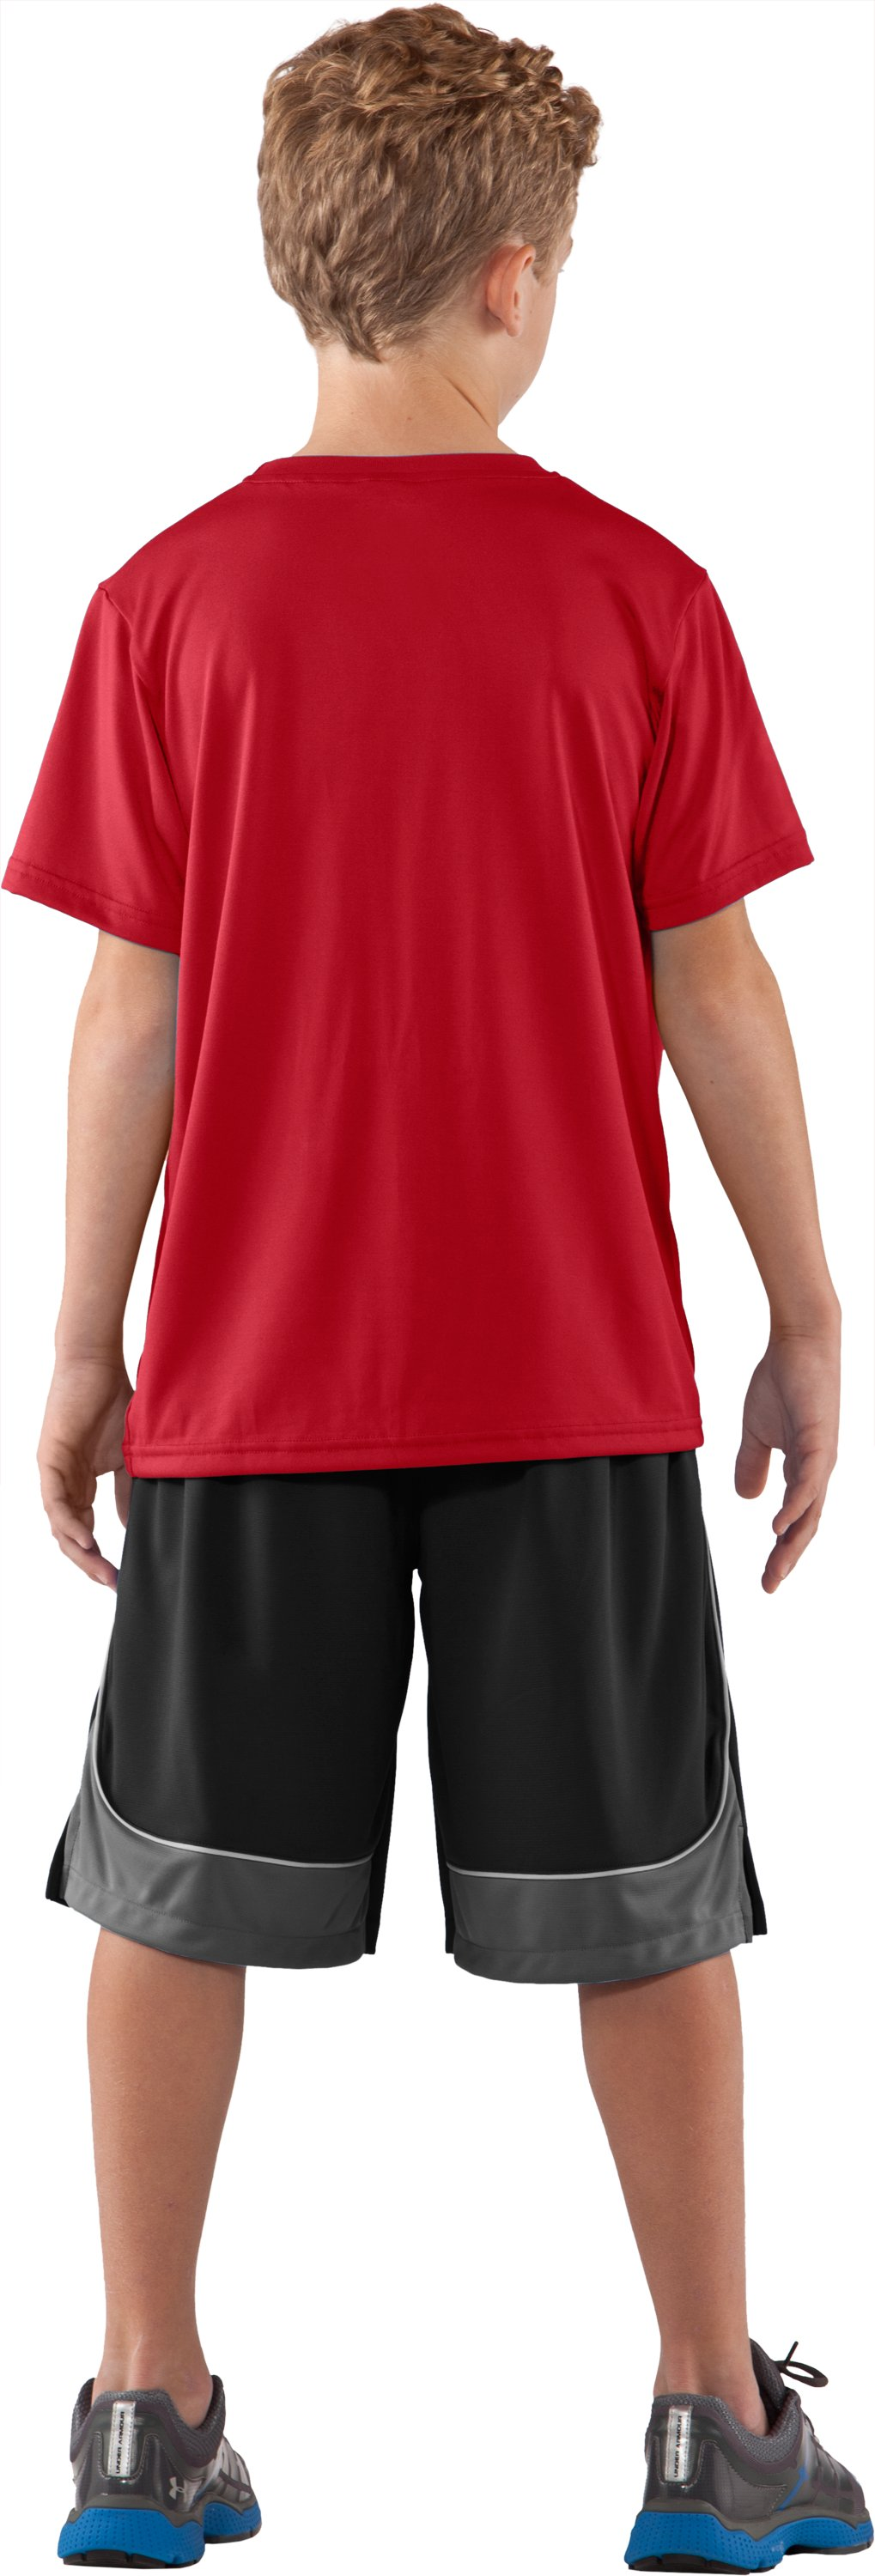 Boys' Texas Tech UA Tech™ T-Shirt, Red, Back